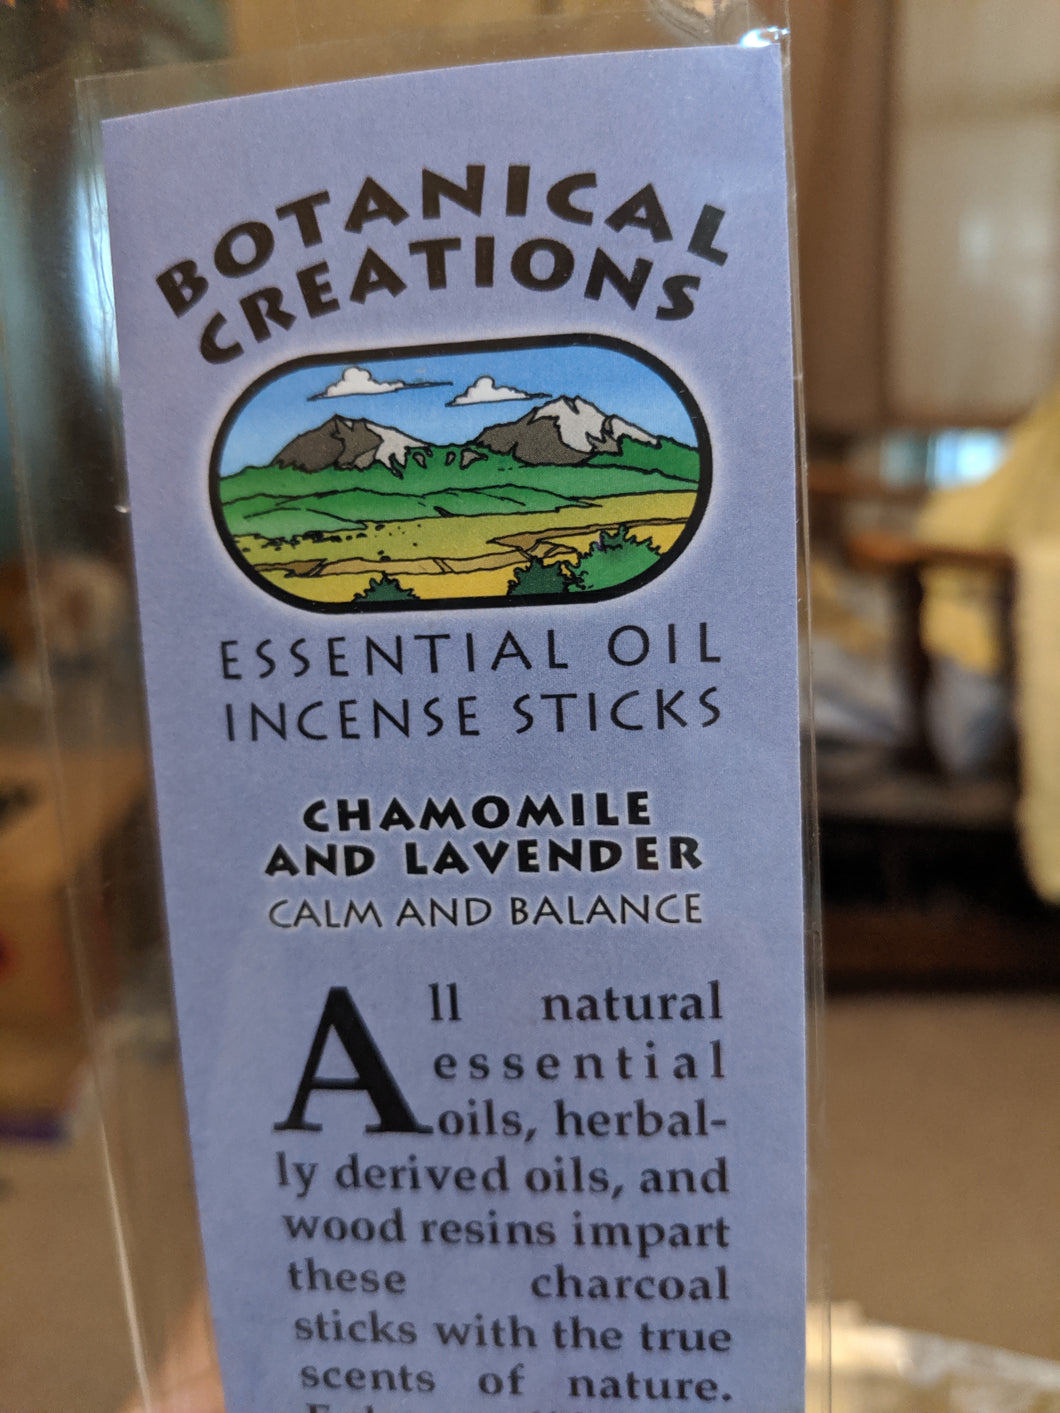 Botanical Creations-Chamomile/Lavender Incense Sticks-20 sticks